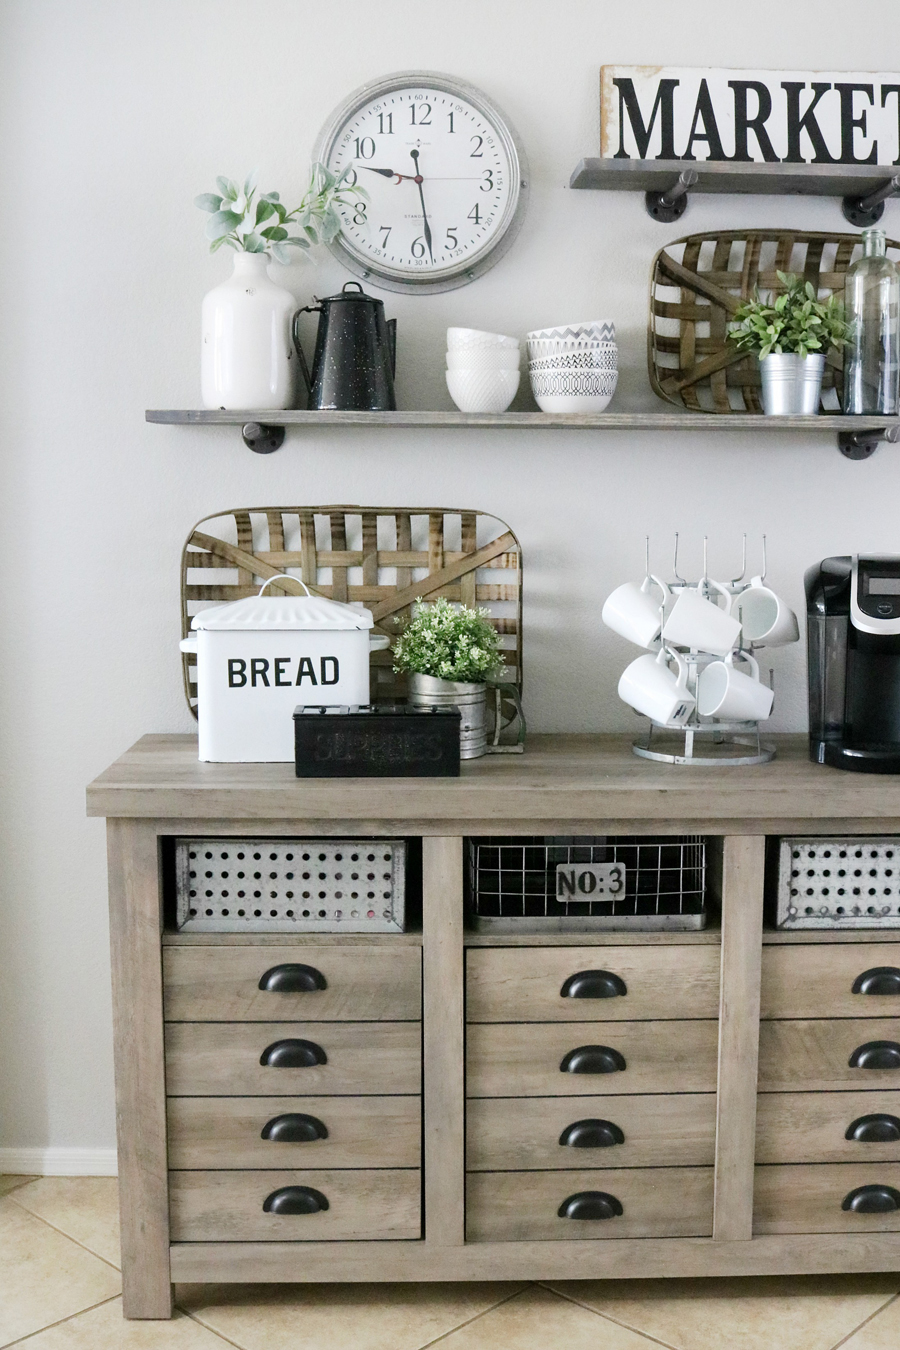 Modern Farmhouse Dining Room Decor with Finds from Walmart